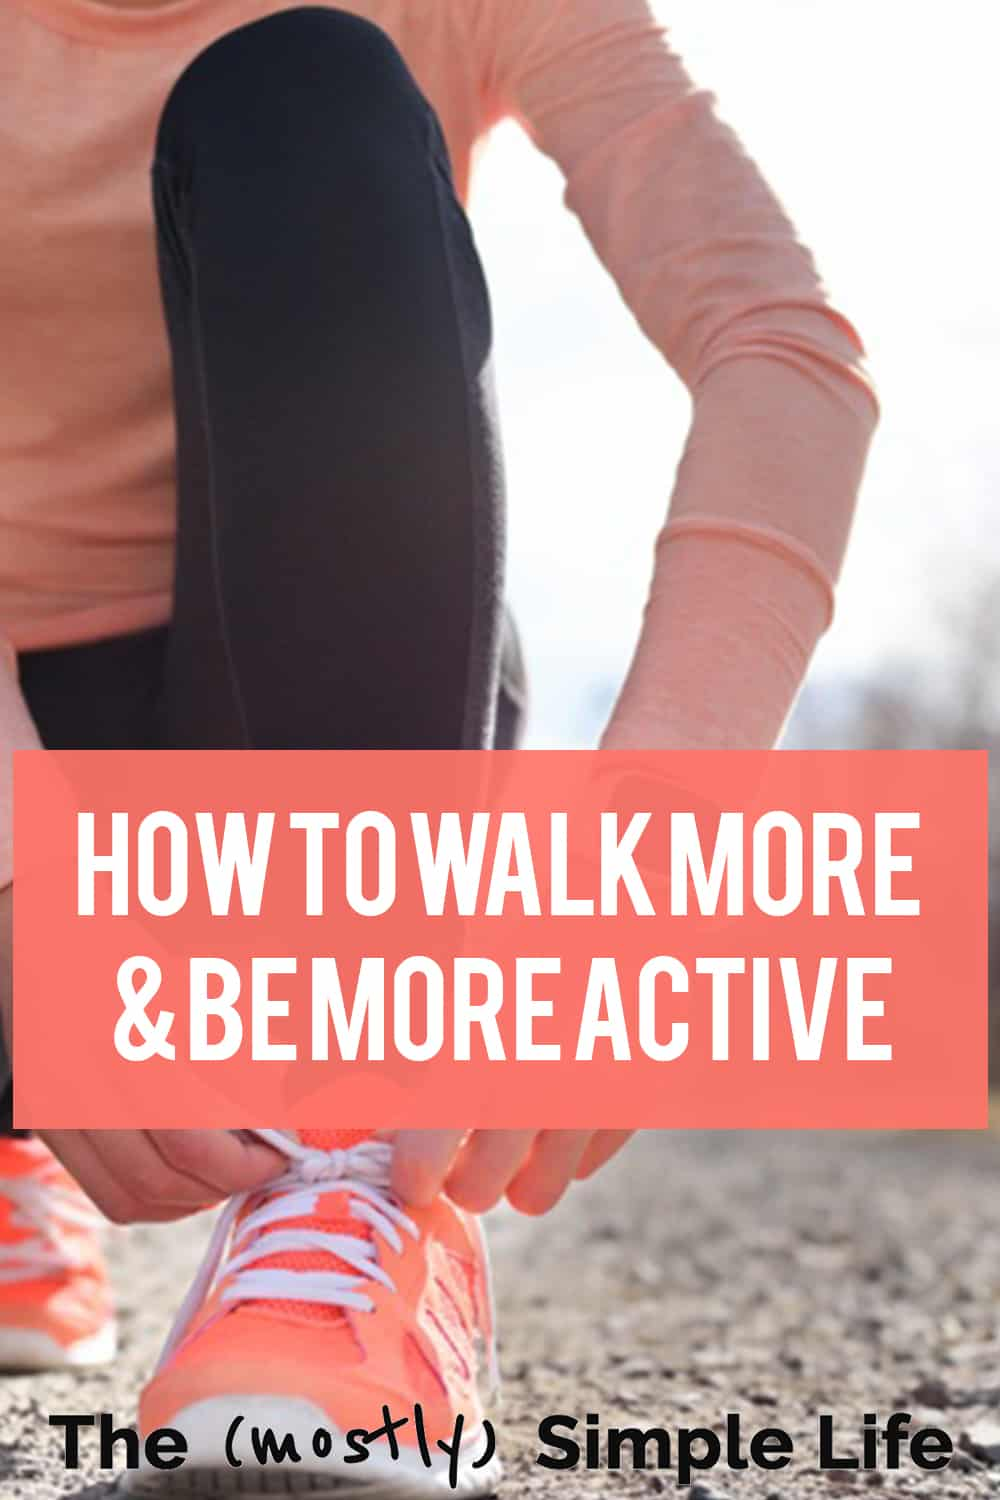 Discover the Amazing Benefits of Walking Habits (And How to Walk More)